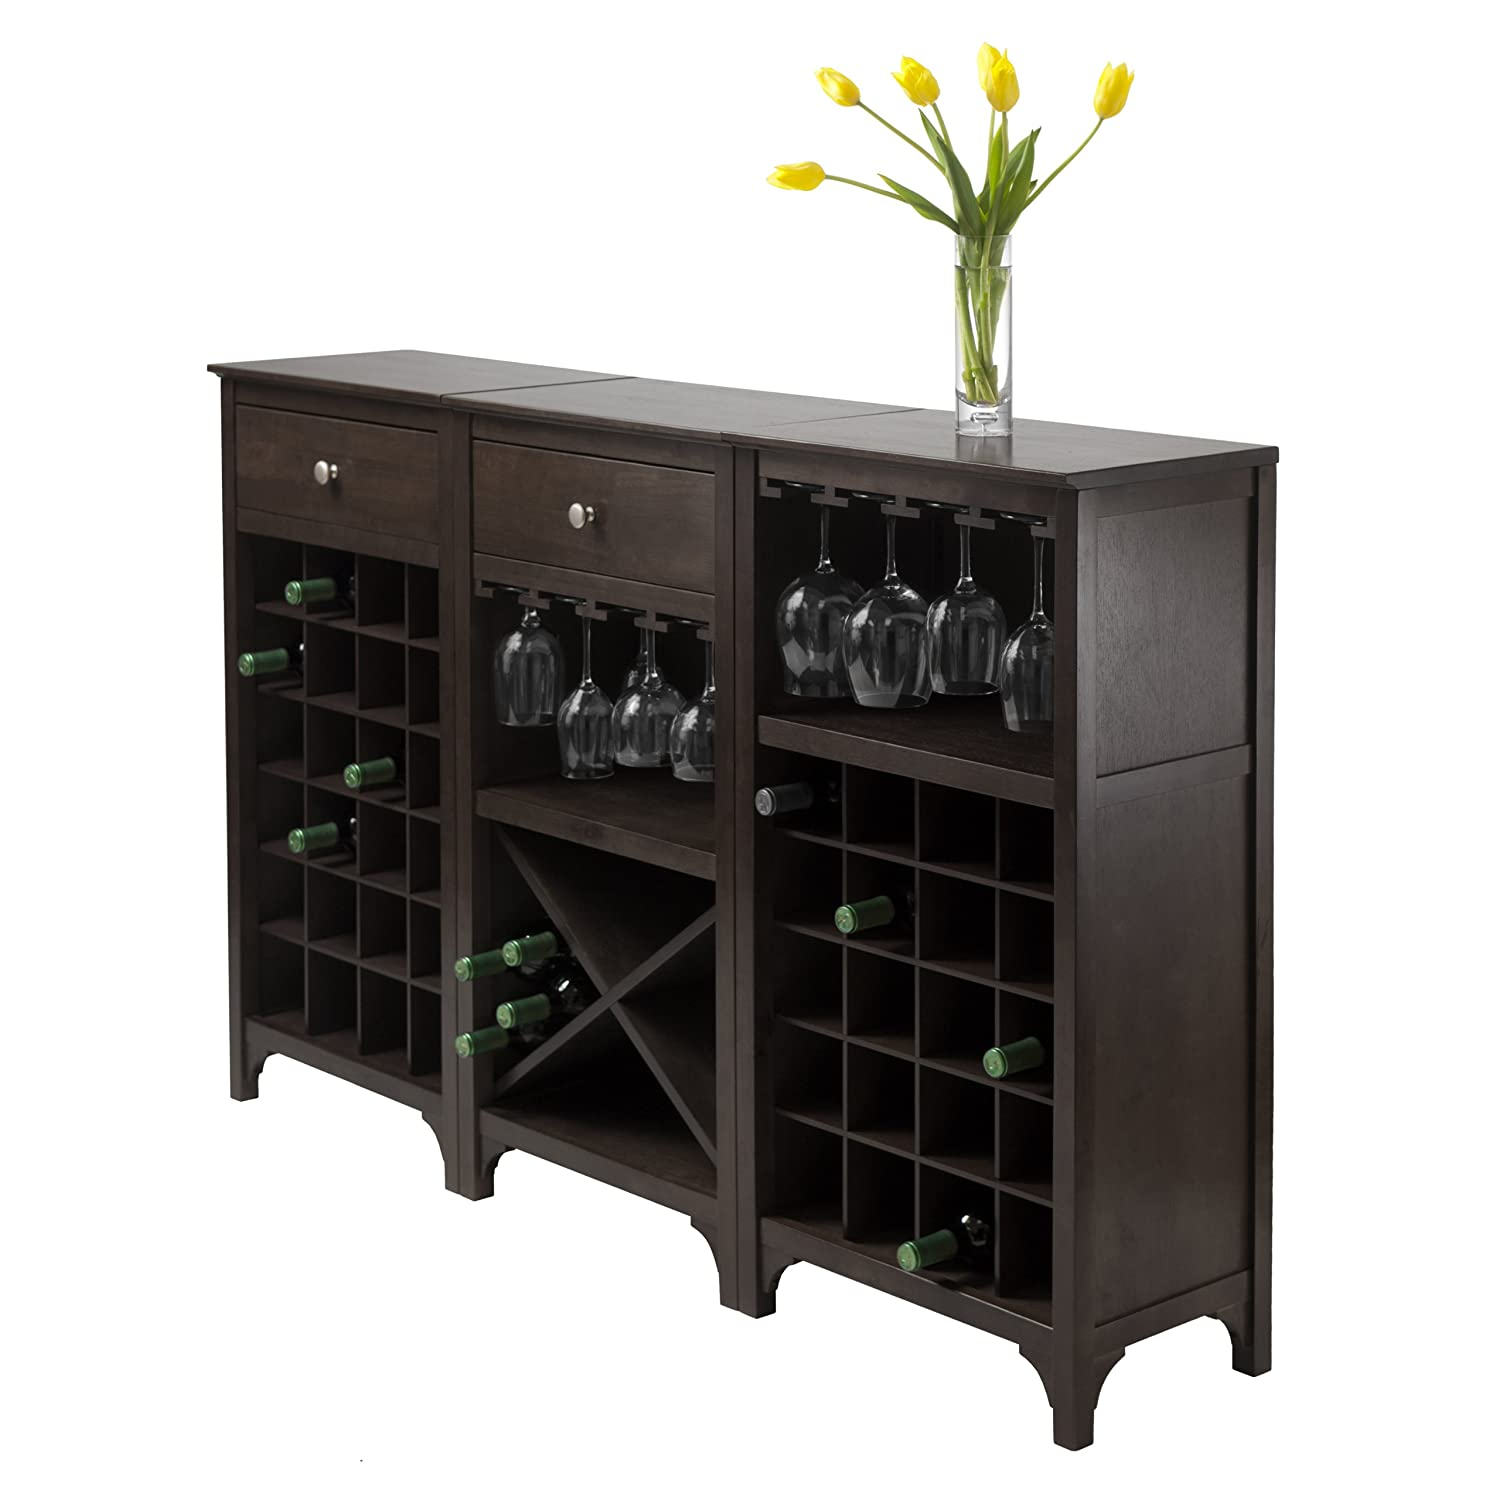 Merveilleux Amazon.com: Winsome Ancona Wine Cabinet With Glass Rack: Kitchen U0026 Dining